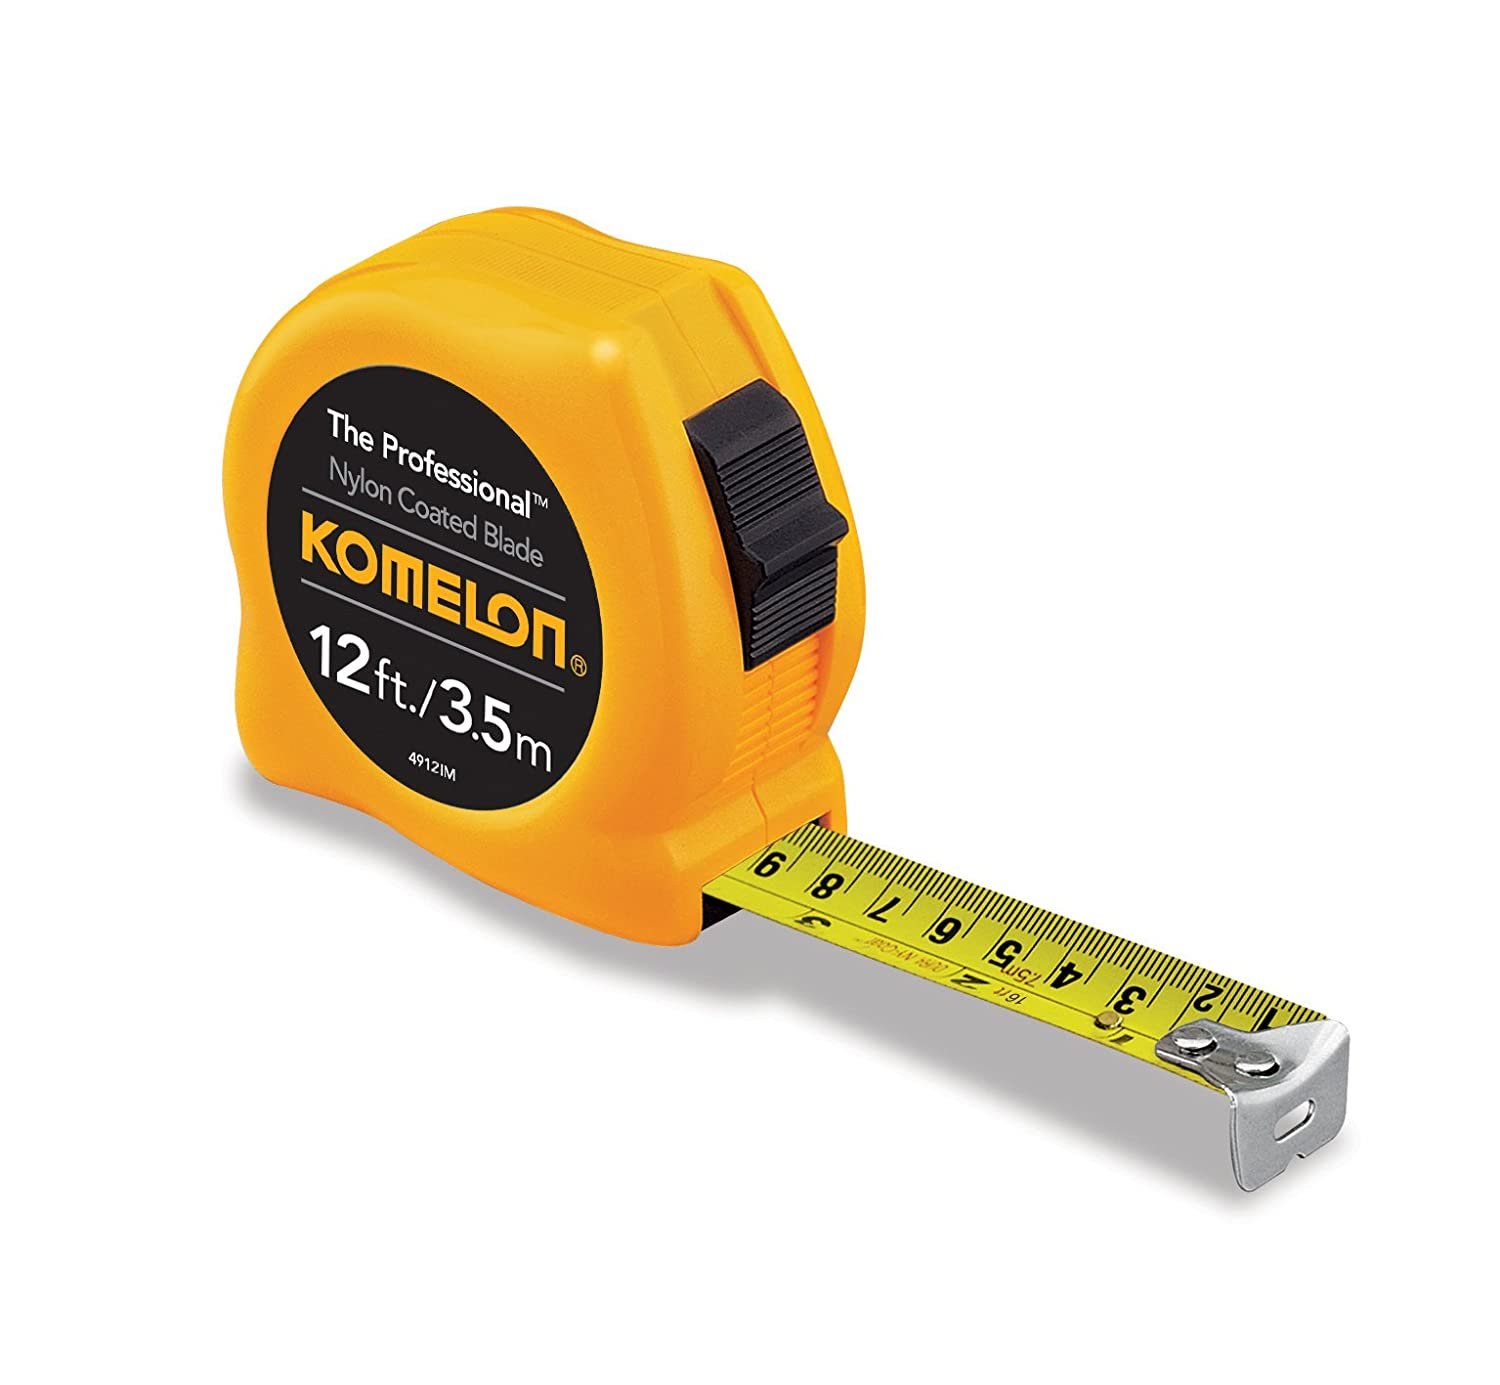 Komelon 4916IM The Professional 16-Foot Inch/Metric Scale Power Tape, Yellow